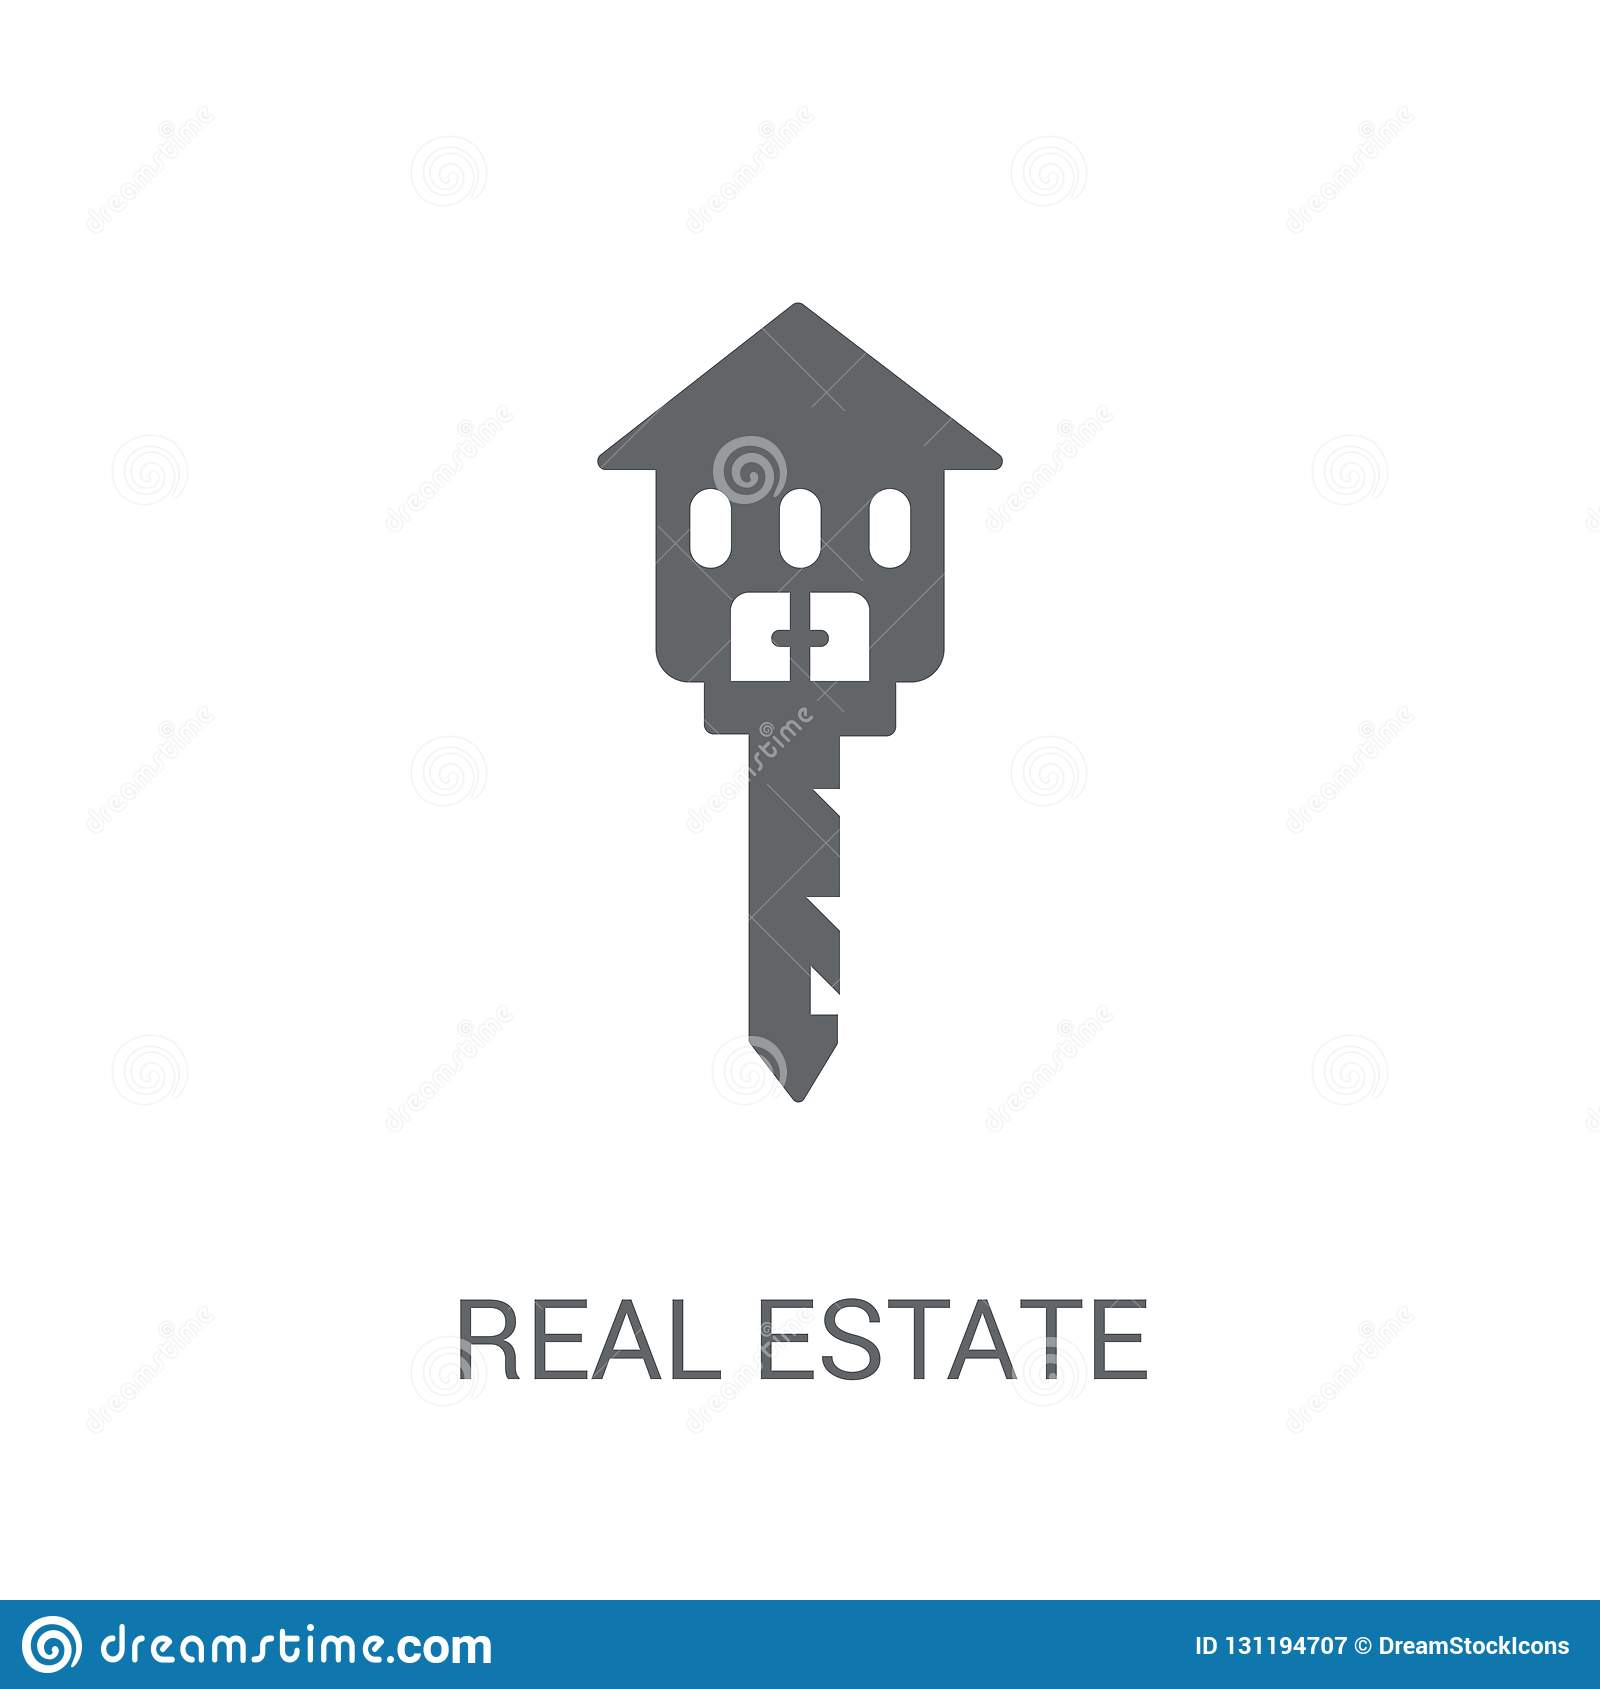 Real estate icon. Trendy Real estate logo concept on white background from Real Estate collection